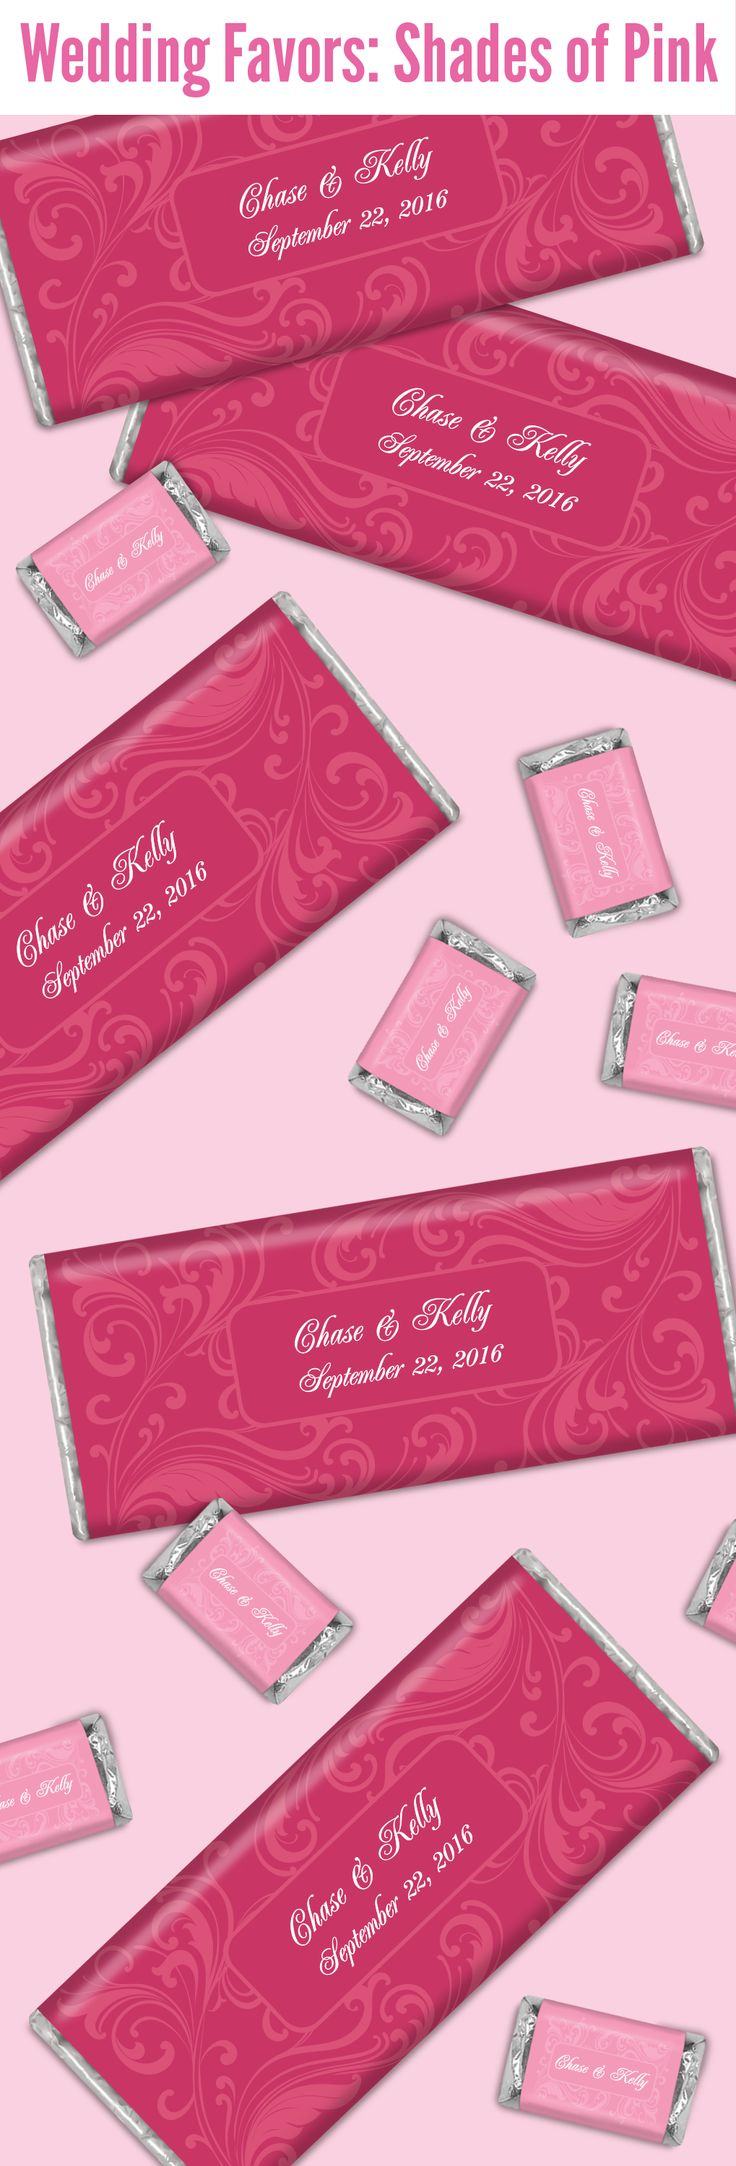 HERSHEYS Chocolate Wedding Favors In Various Shades Of Pink Will Be A Cute Addition To Your